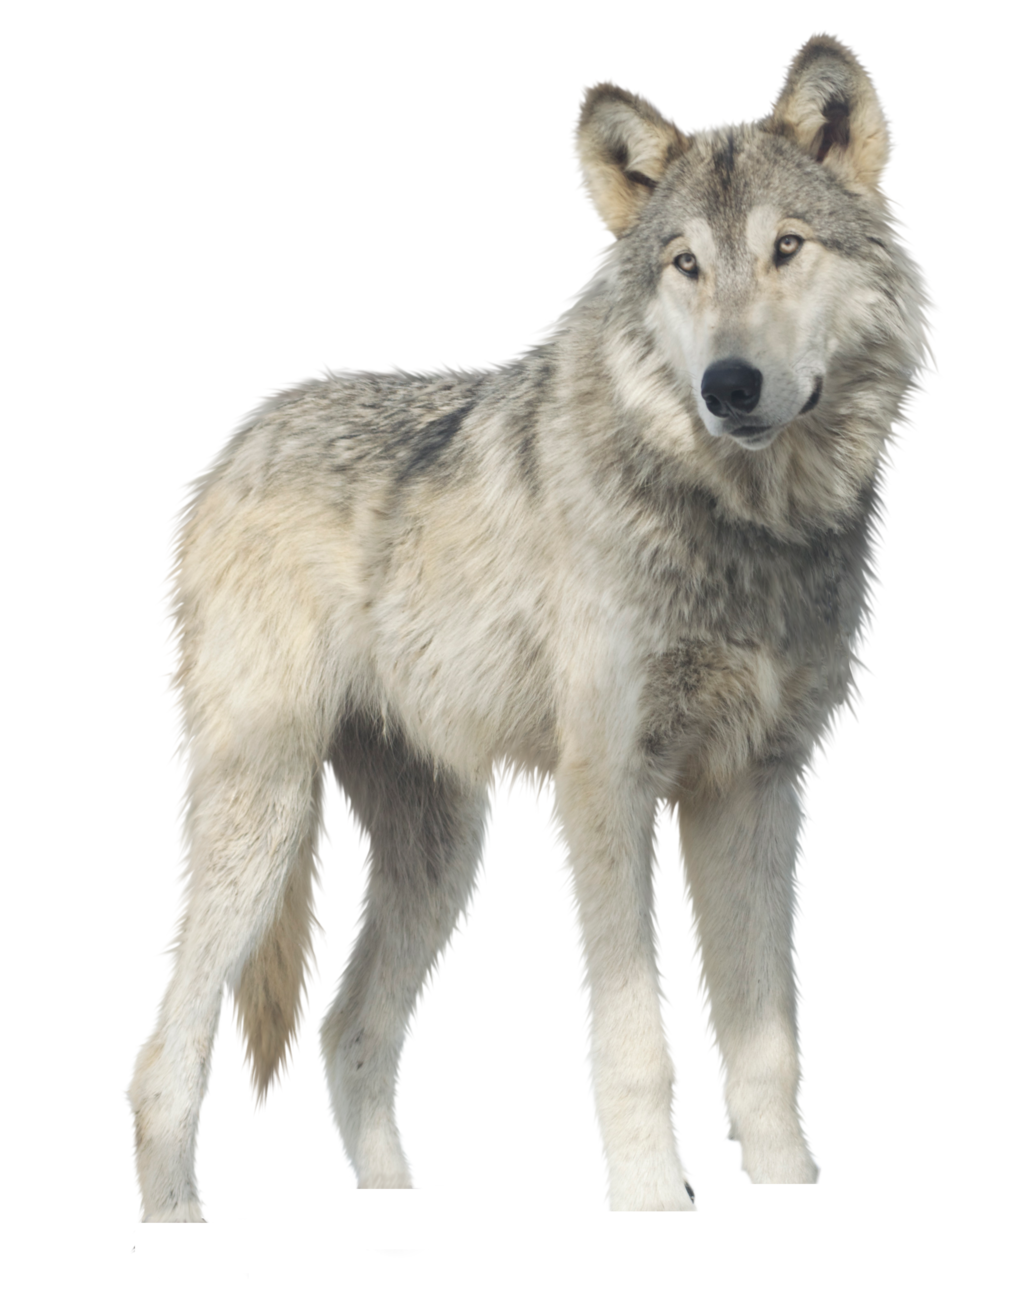 Wolf png images. Godzilla clipart free on